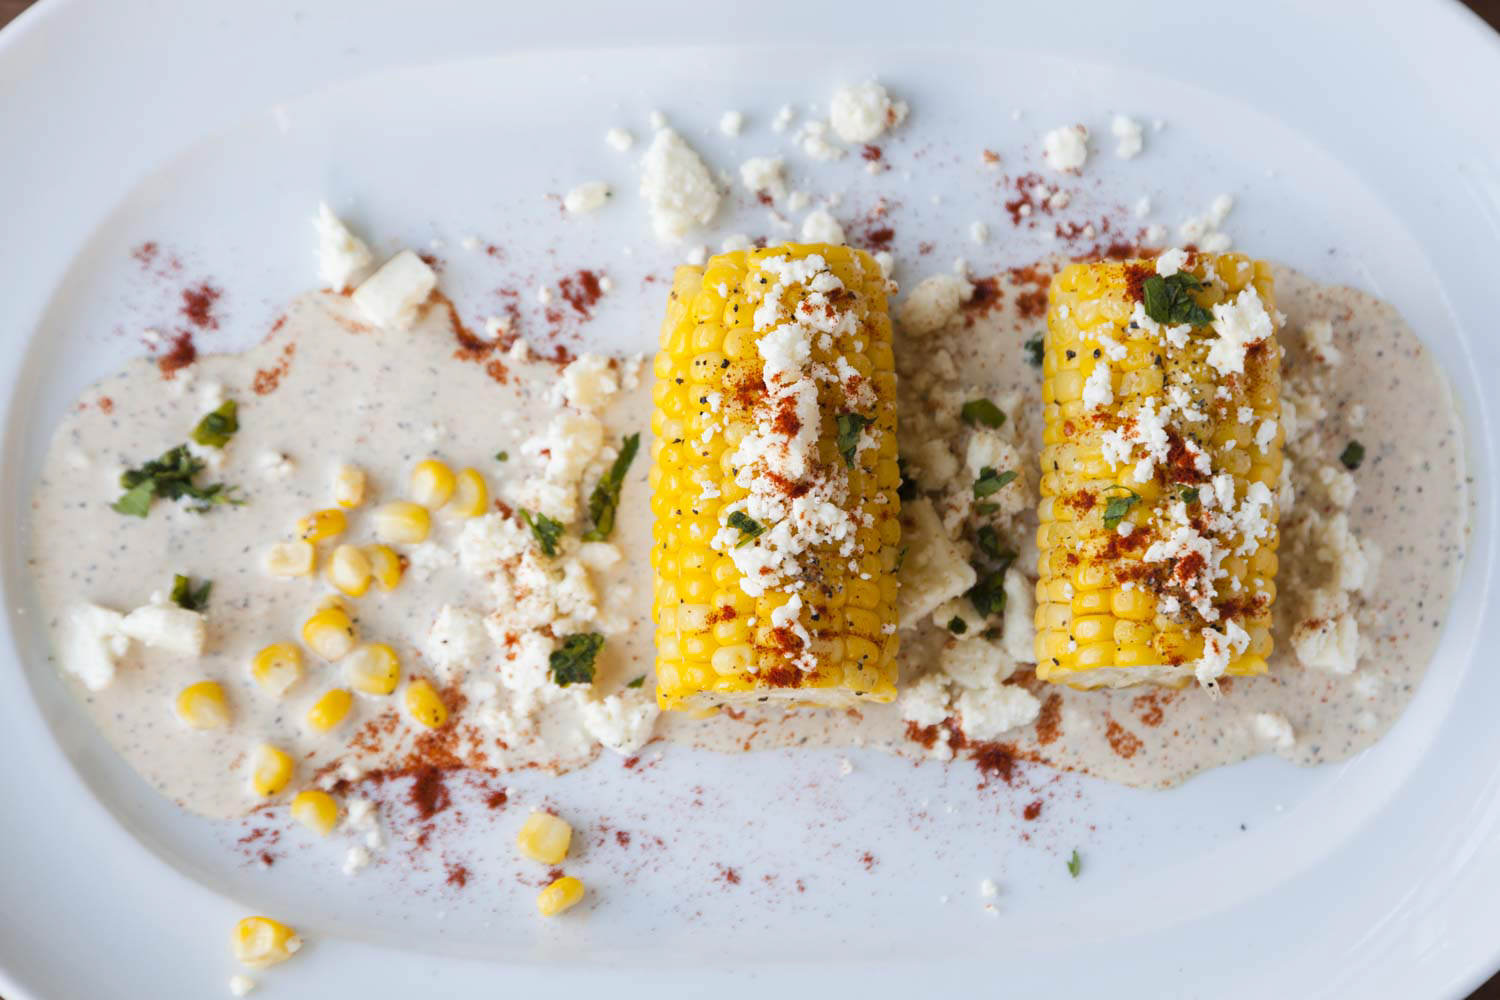 Corn on cob garnished with herbs and spices